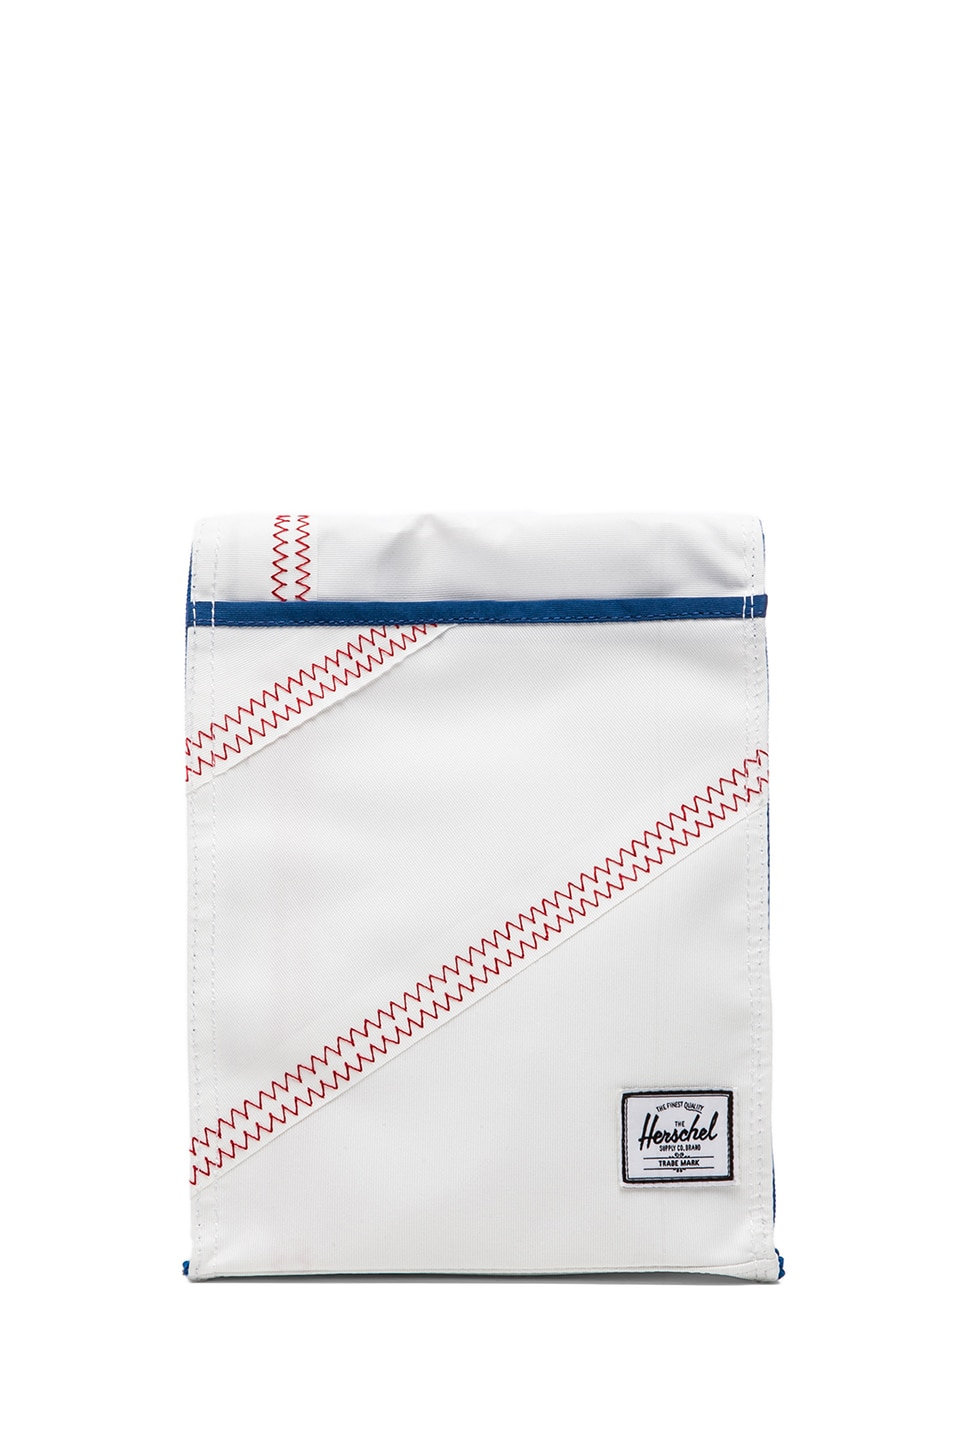 Herschel Supply Co. Studio Collection Canteen Lunch Bag in White & Regatta Blue